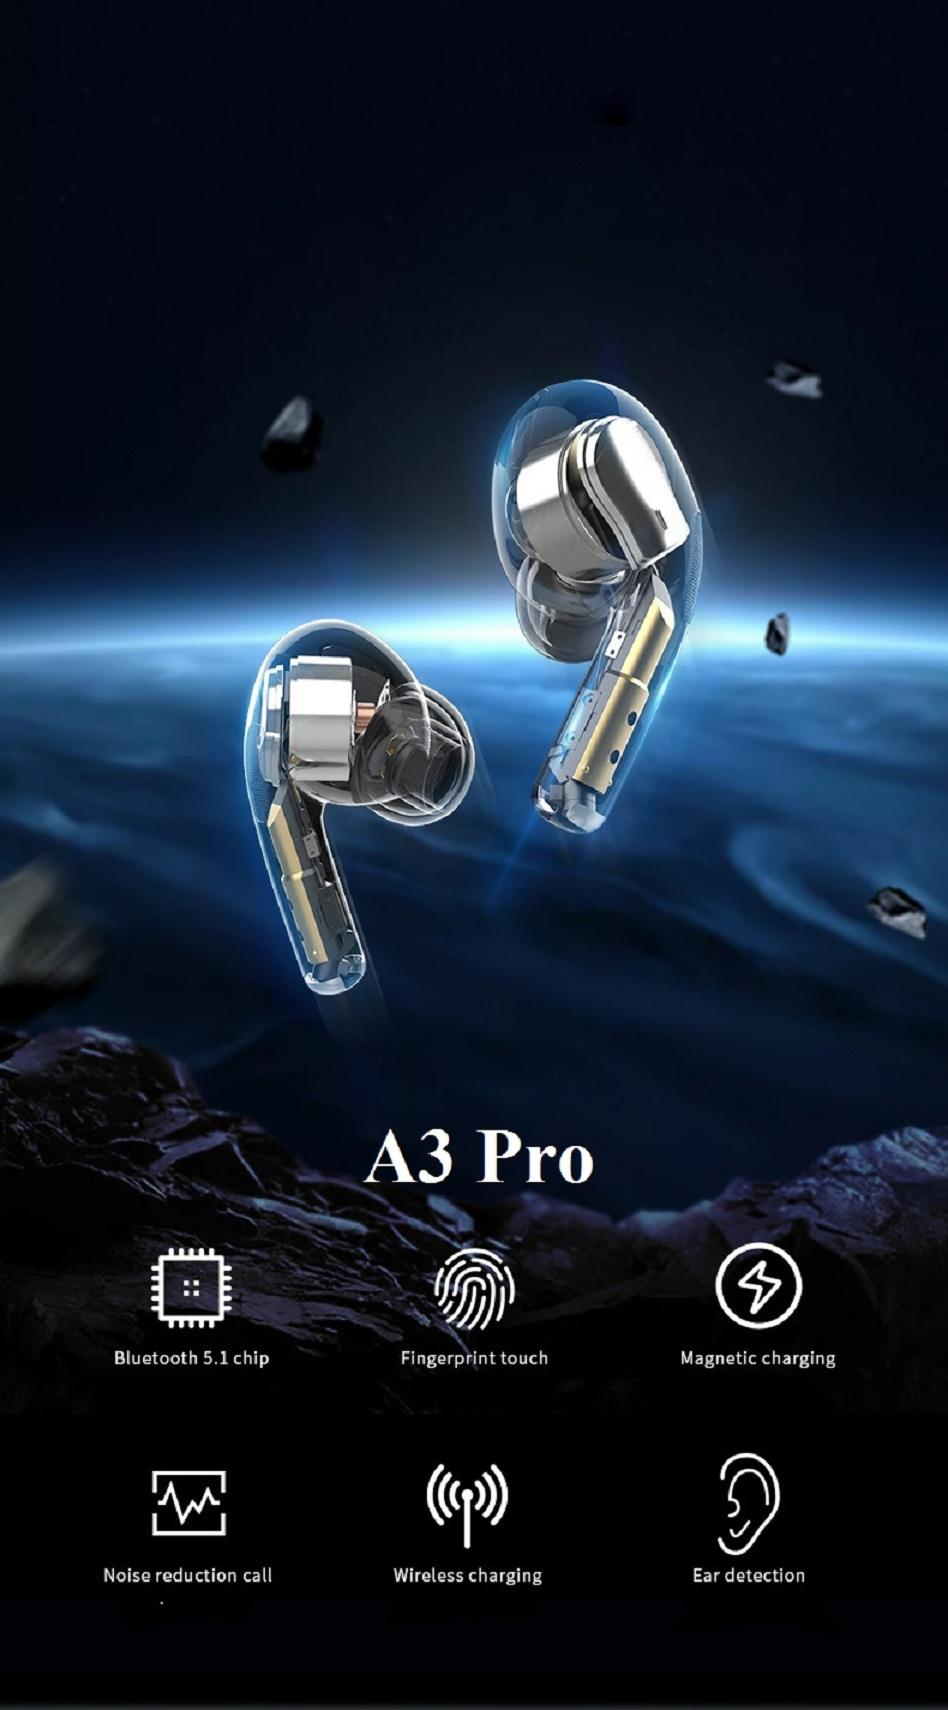 2020 New Trend A3 pro Wireless Charging Generation Pro3 Bluetooth Headphones auto paring Earphones Ear buds with pop up window Tws